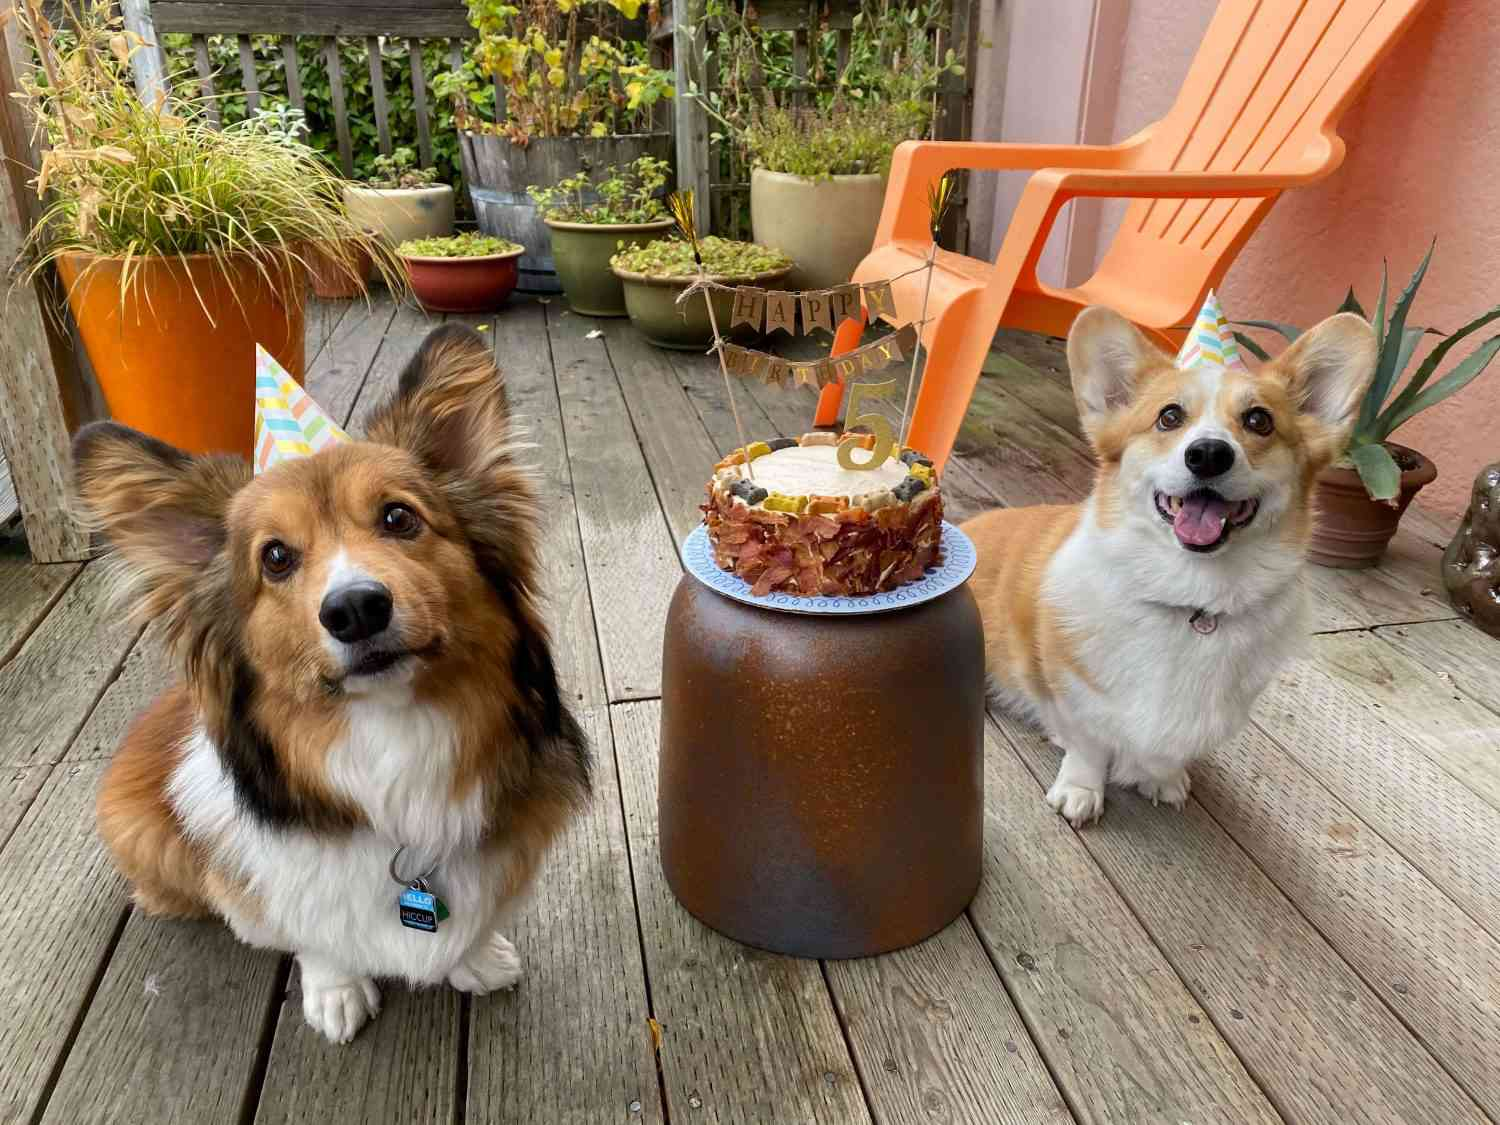 Hiccup the corgi with his birthday cake and his friend